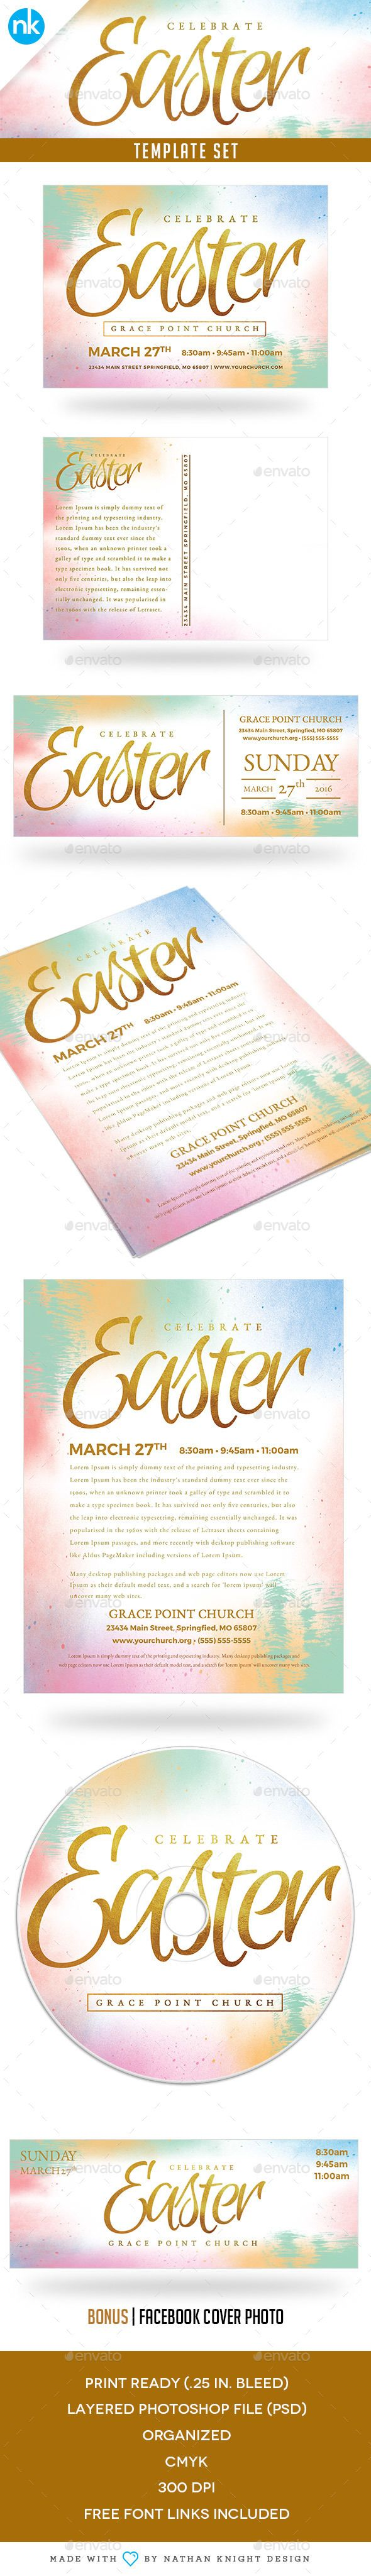 best images about church flyers party flyer easter sunday church template set celebrate